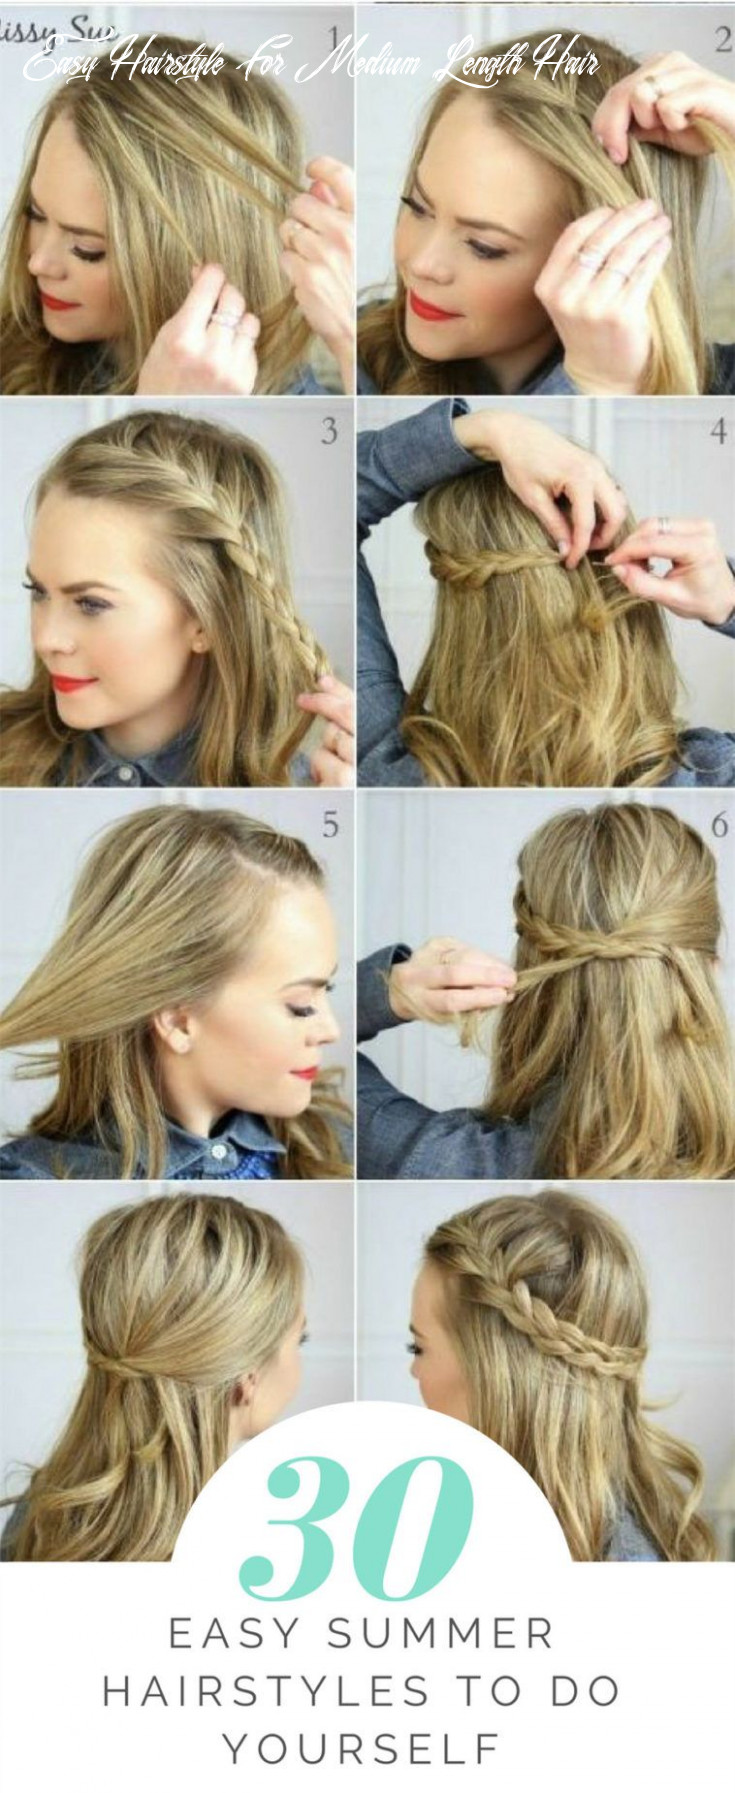 8 easy summer hairstyles to do yourself   cute everyday